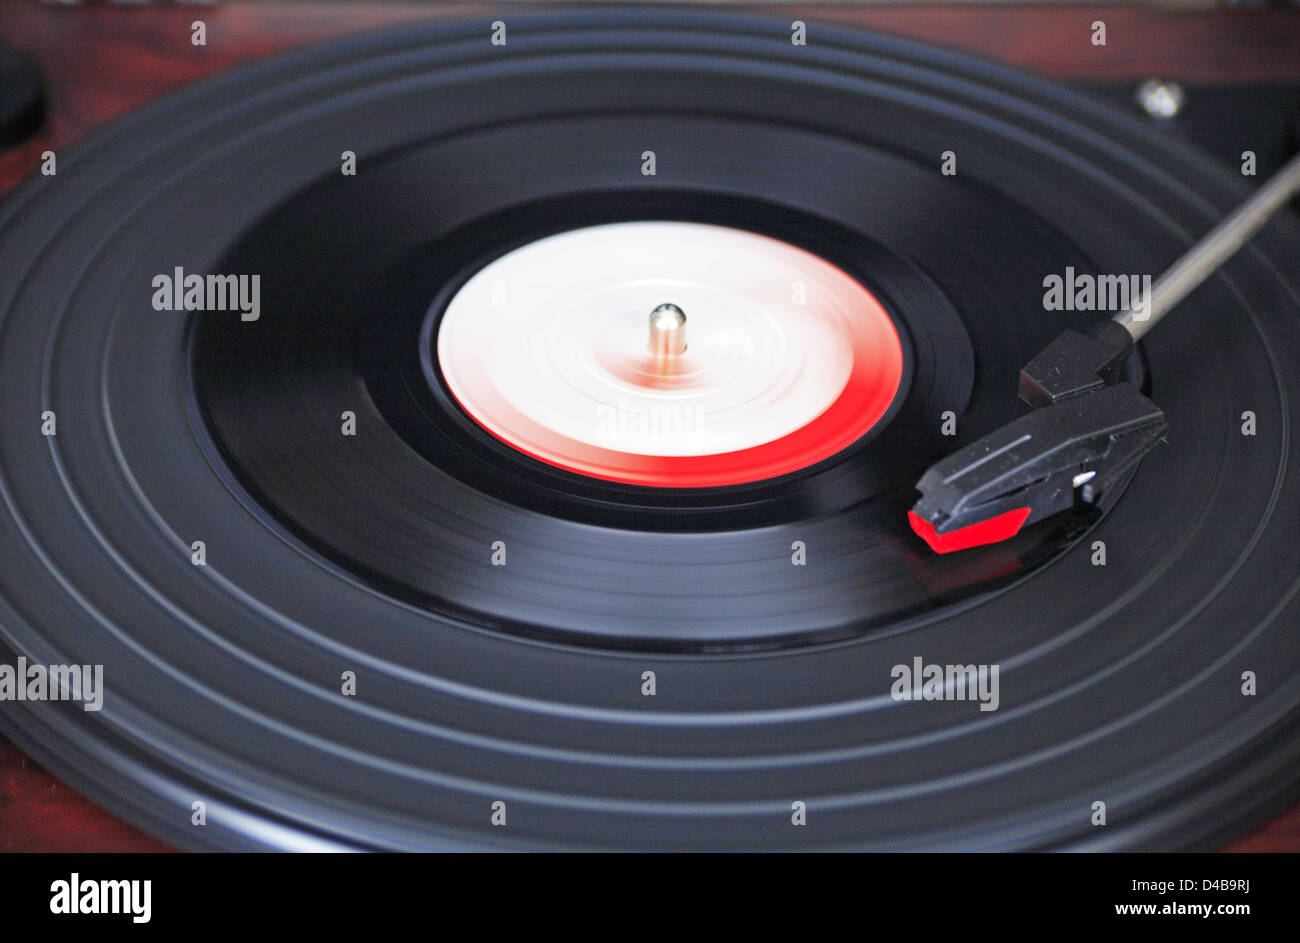 An old vinyl 45 rpm record spinning on a turntable. - Stock Image